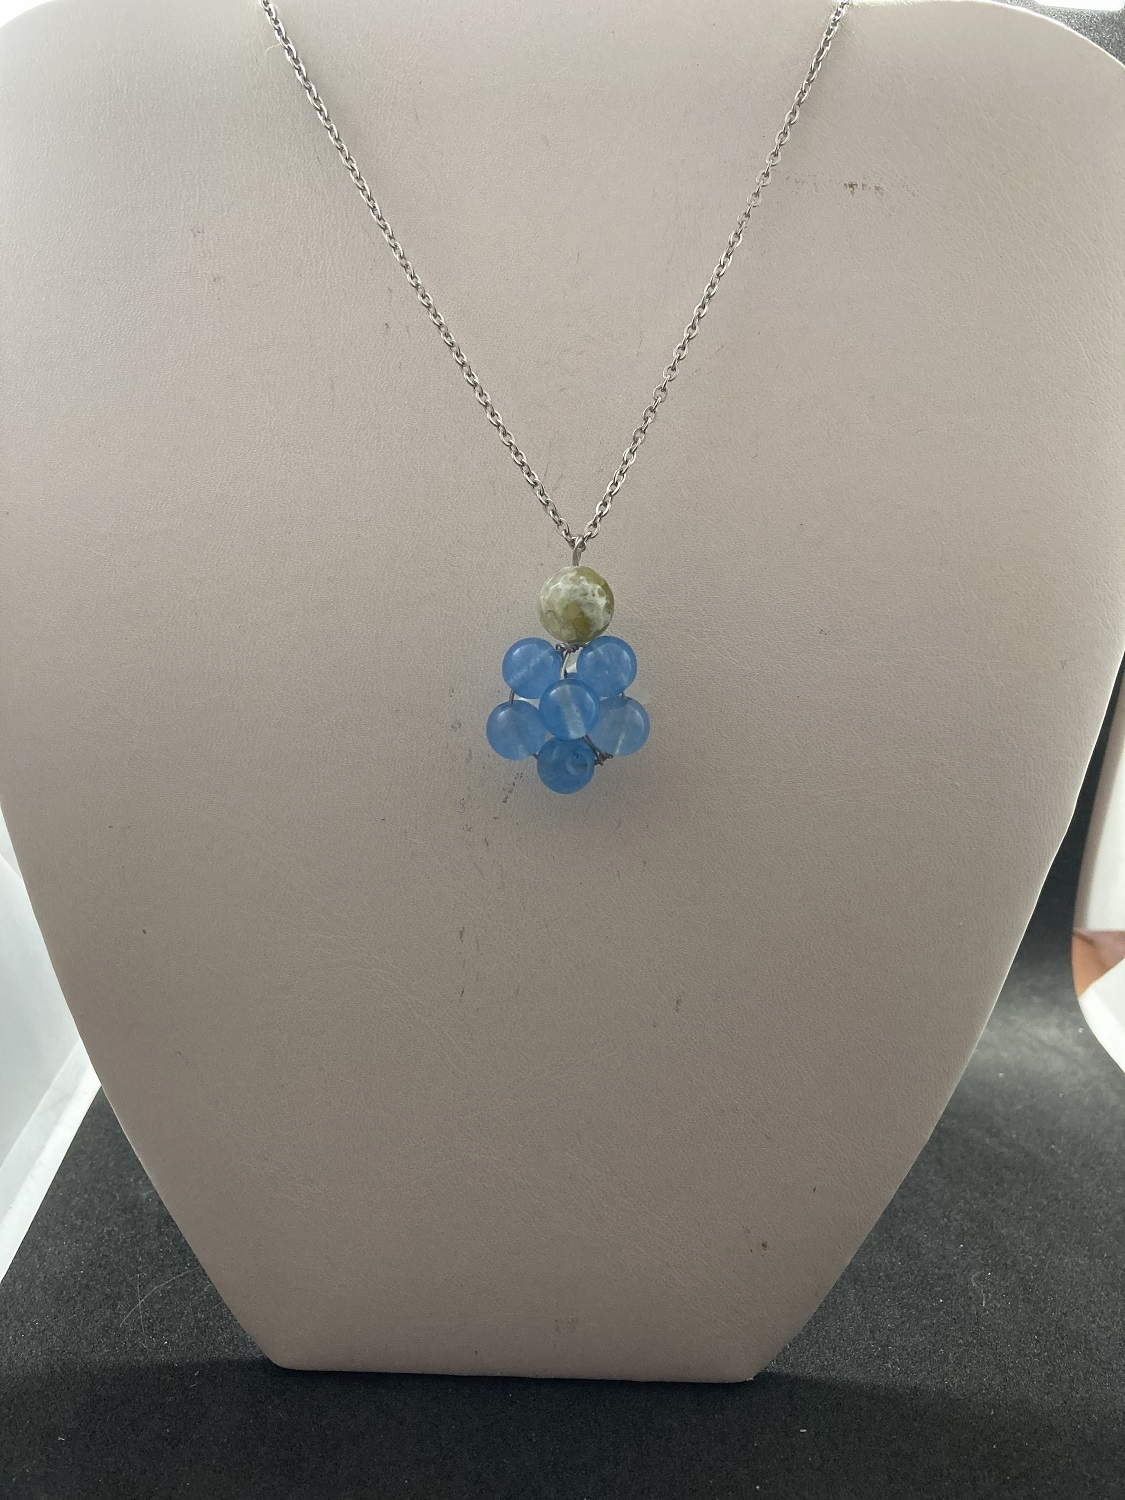 Blue Crystal Bead Chain Necklace with Agate